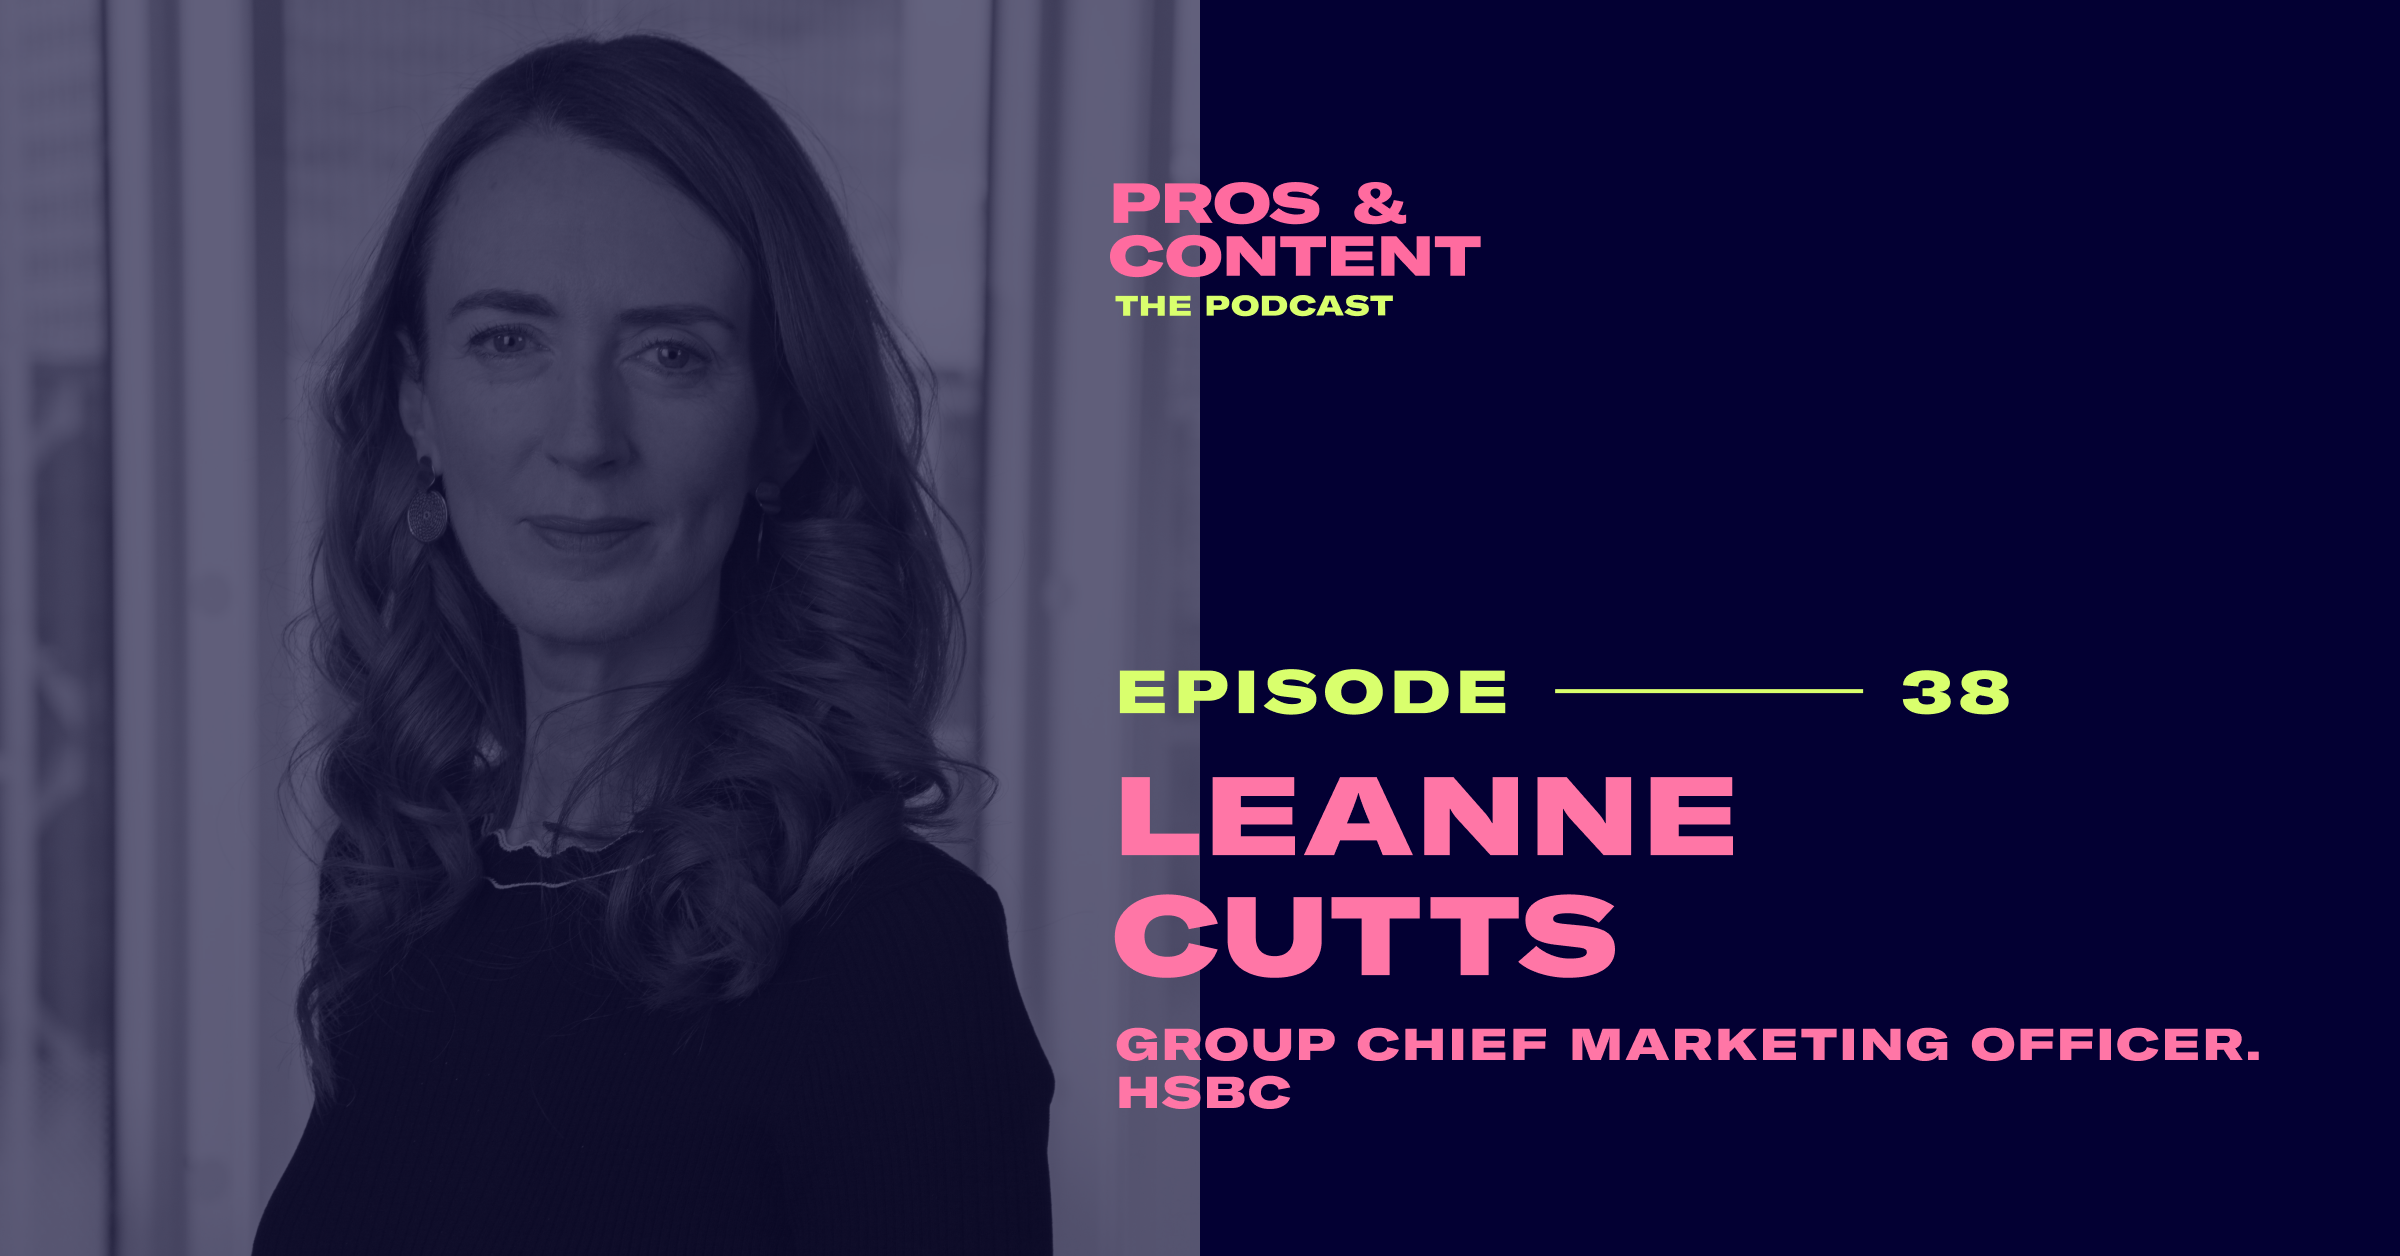 Pros & Content Podcast: Leanne Cutts